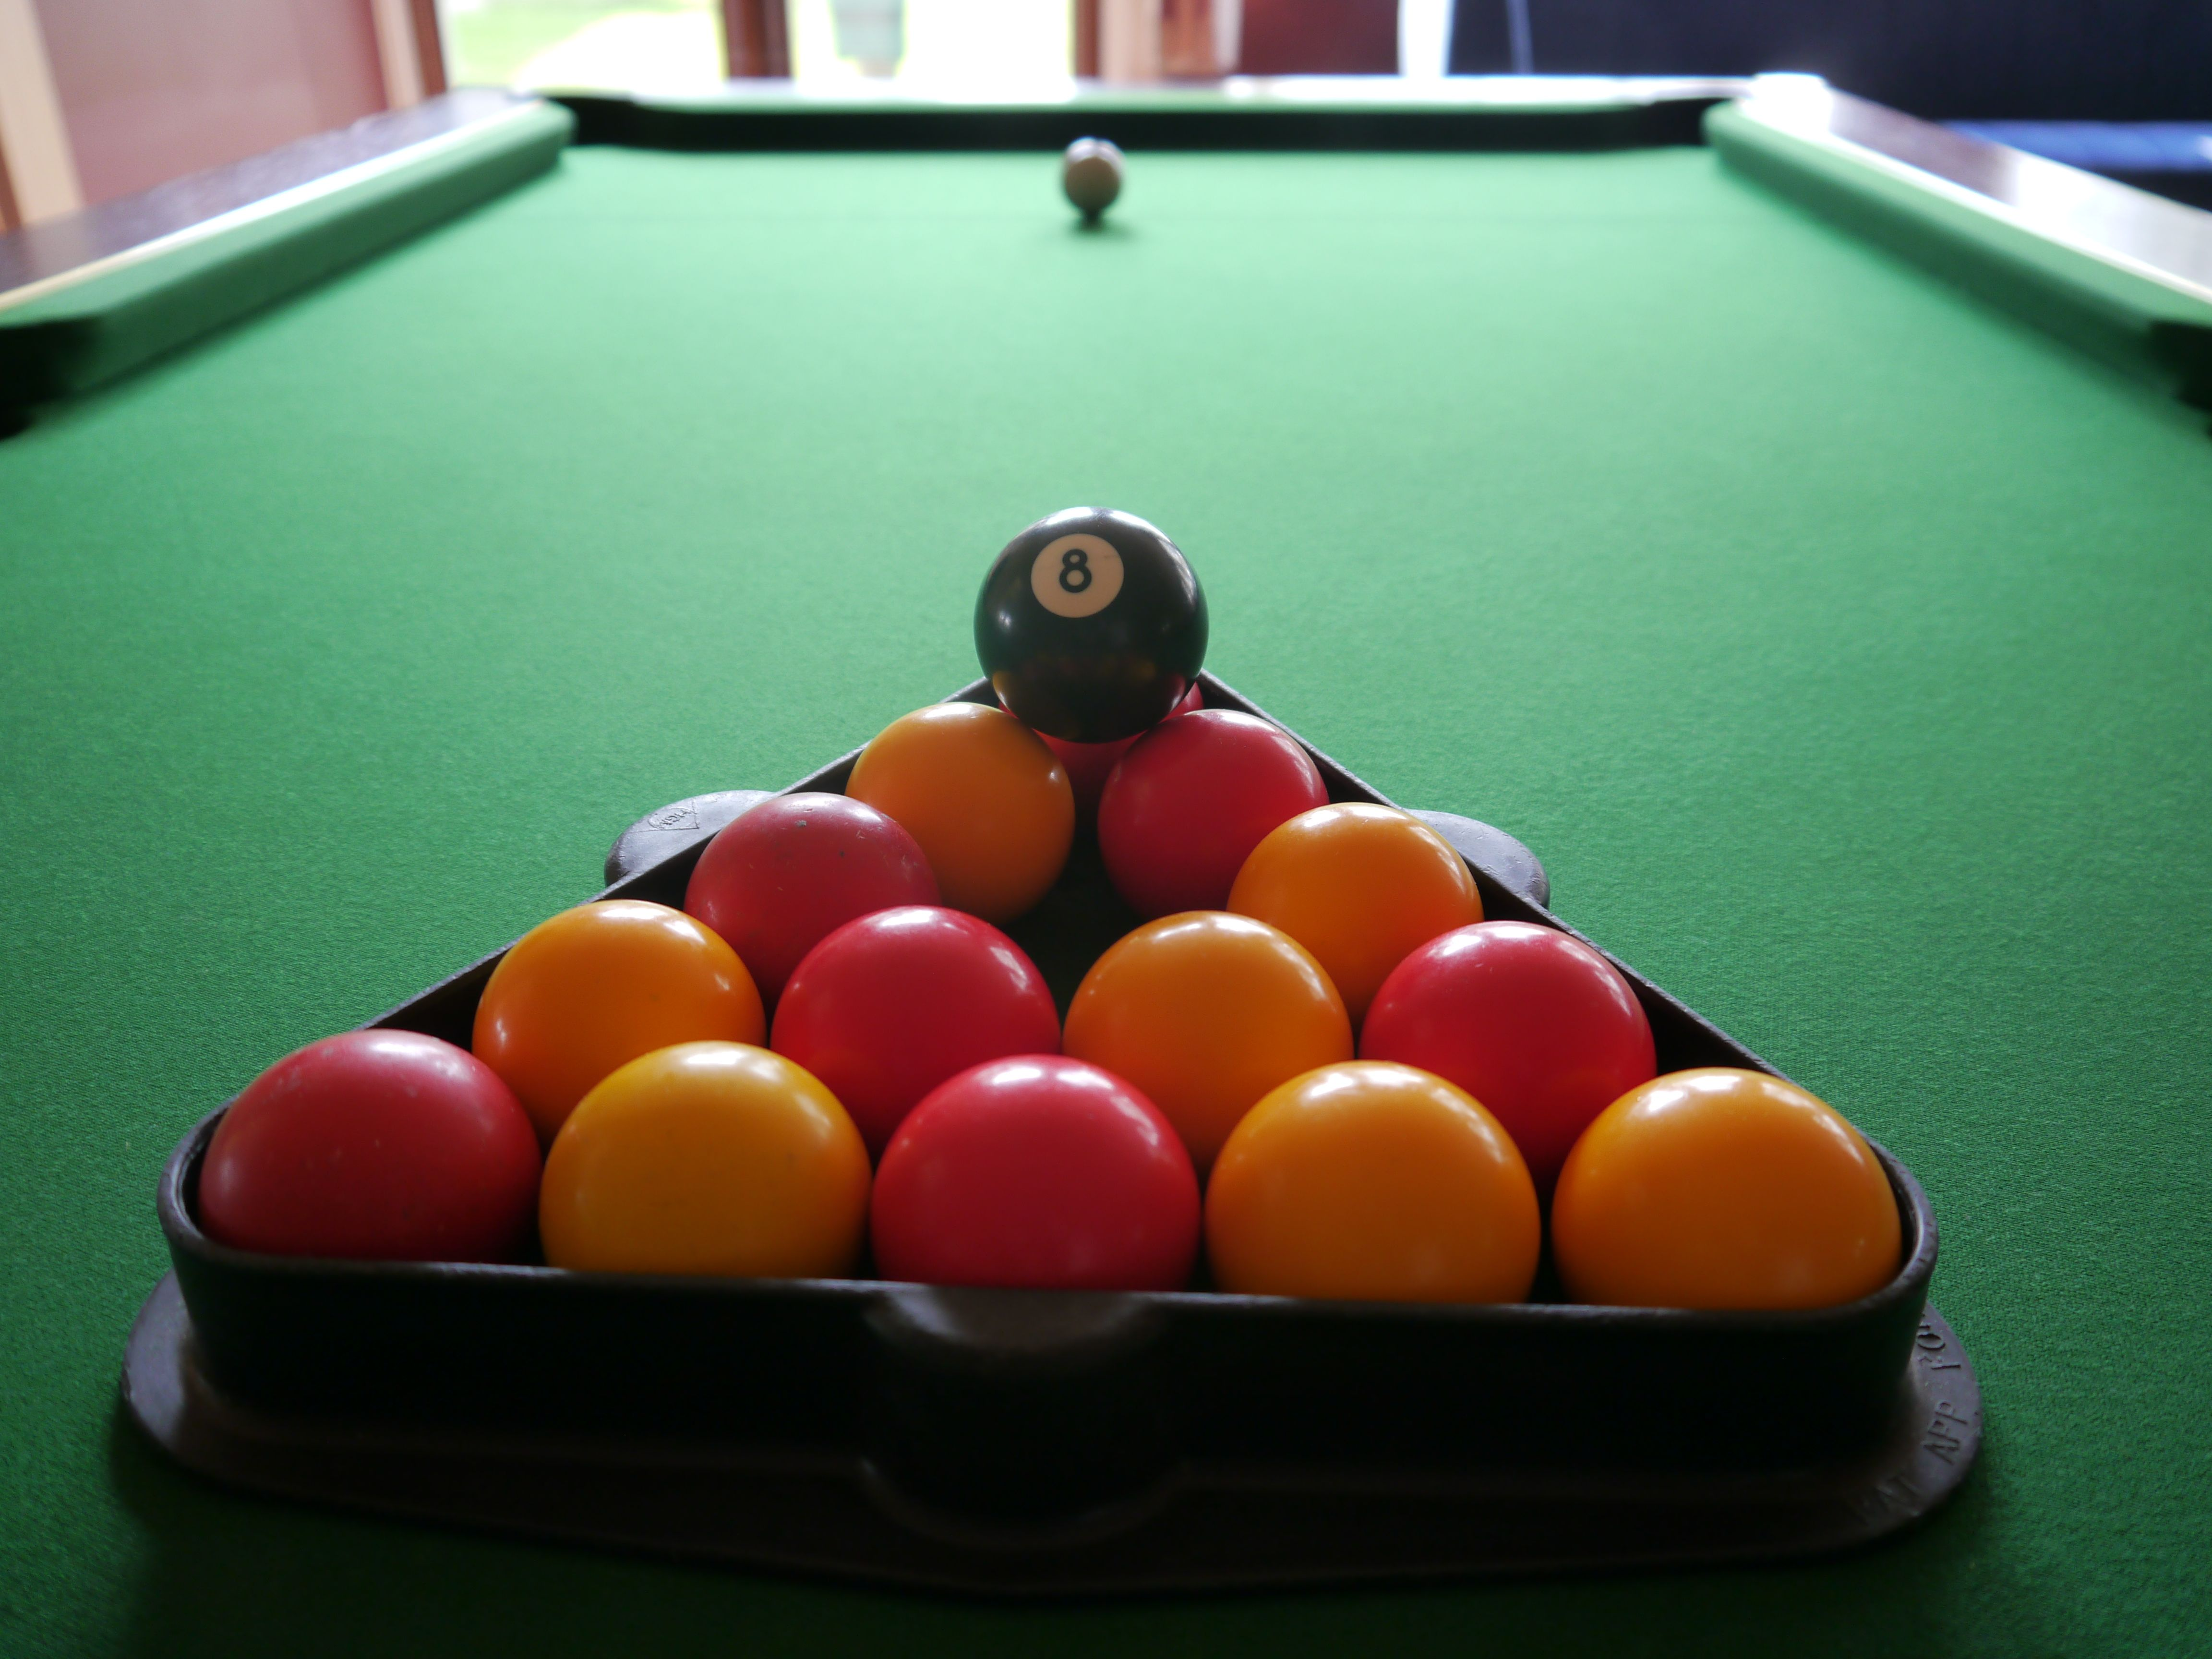 Join Our Pool Team The Holbrook Club - I want to sell my pool table